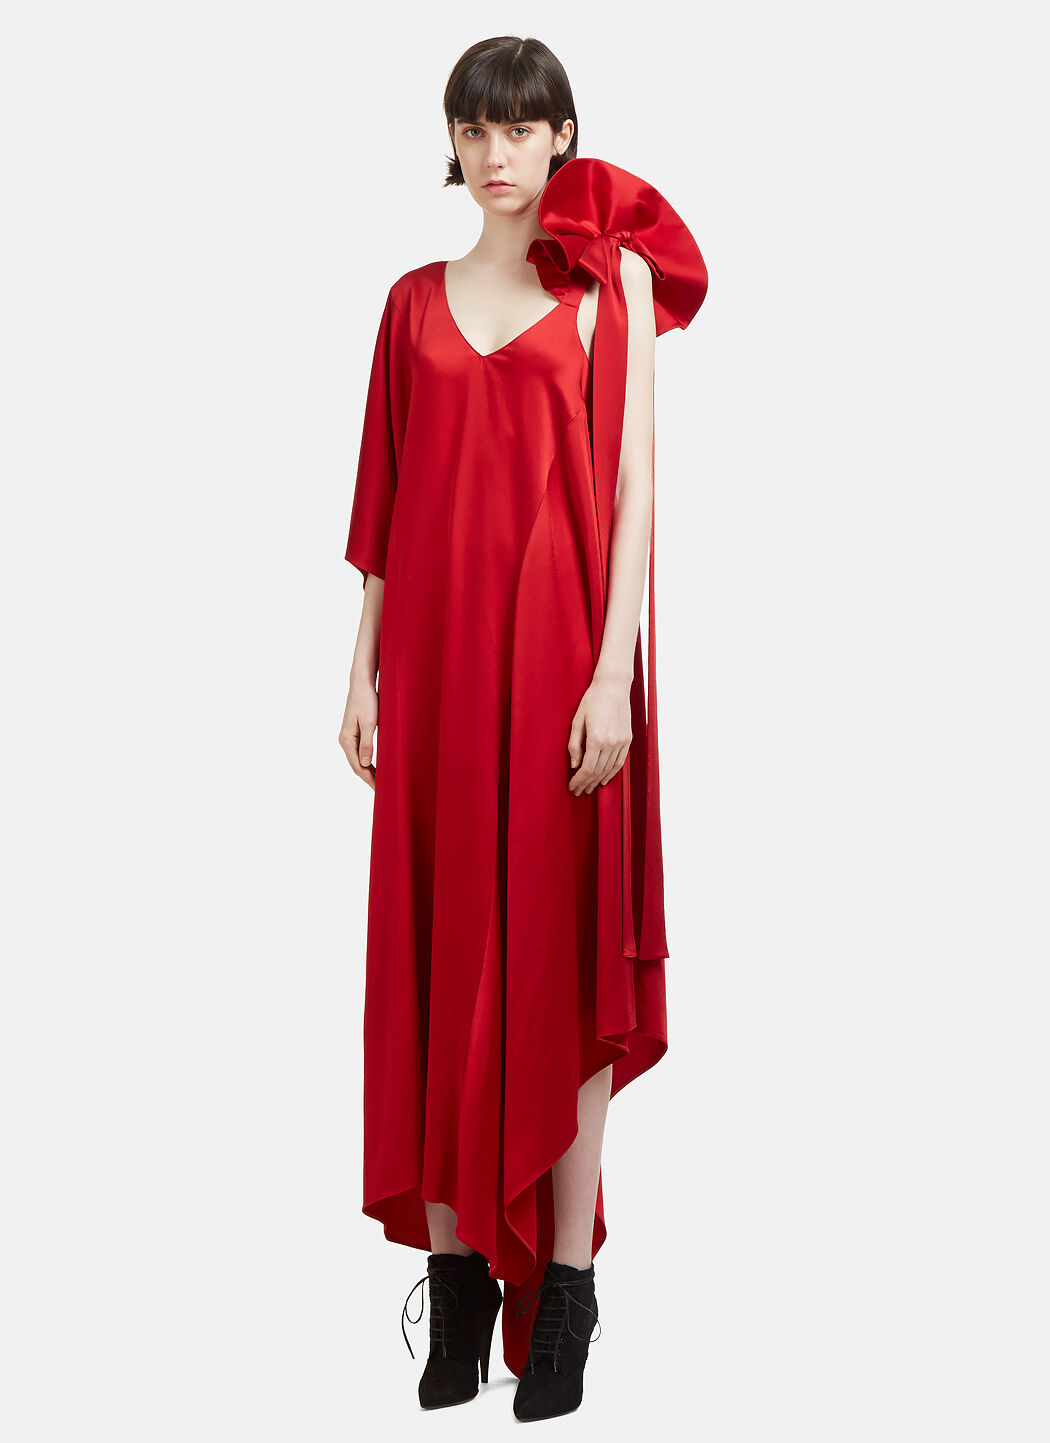 Prices Cheap Sale Ebay Asymmetric ruffled-shoulder gown Valentino Discount Limited Edition fwGasm2om3